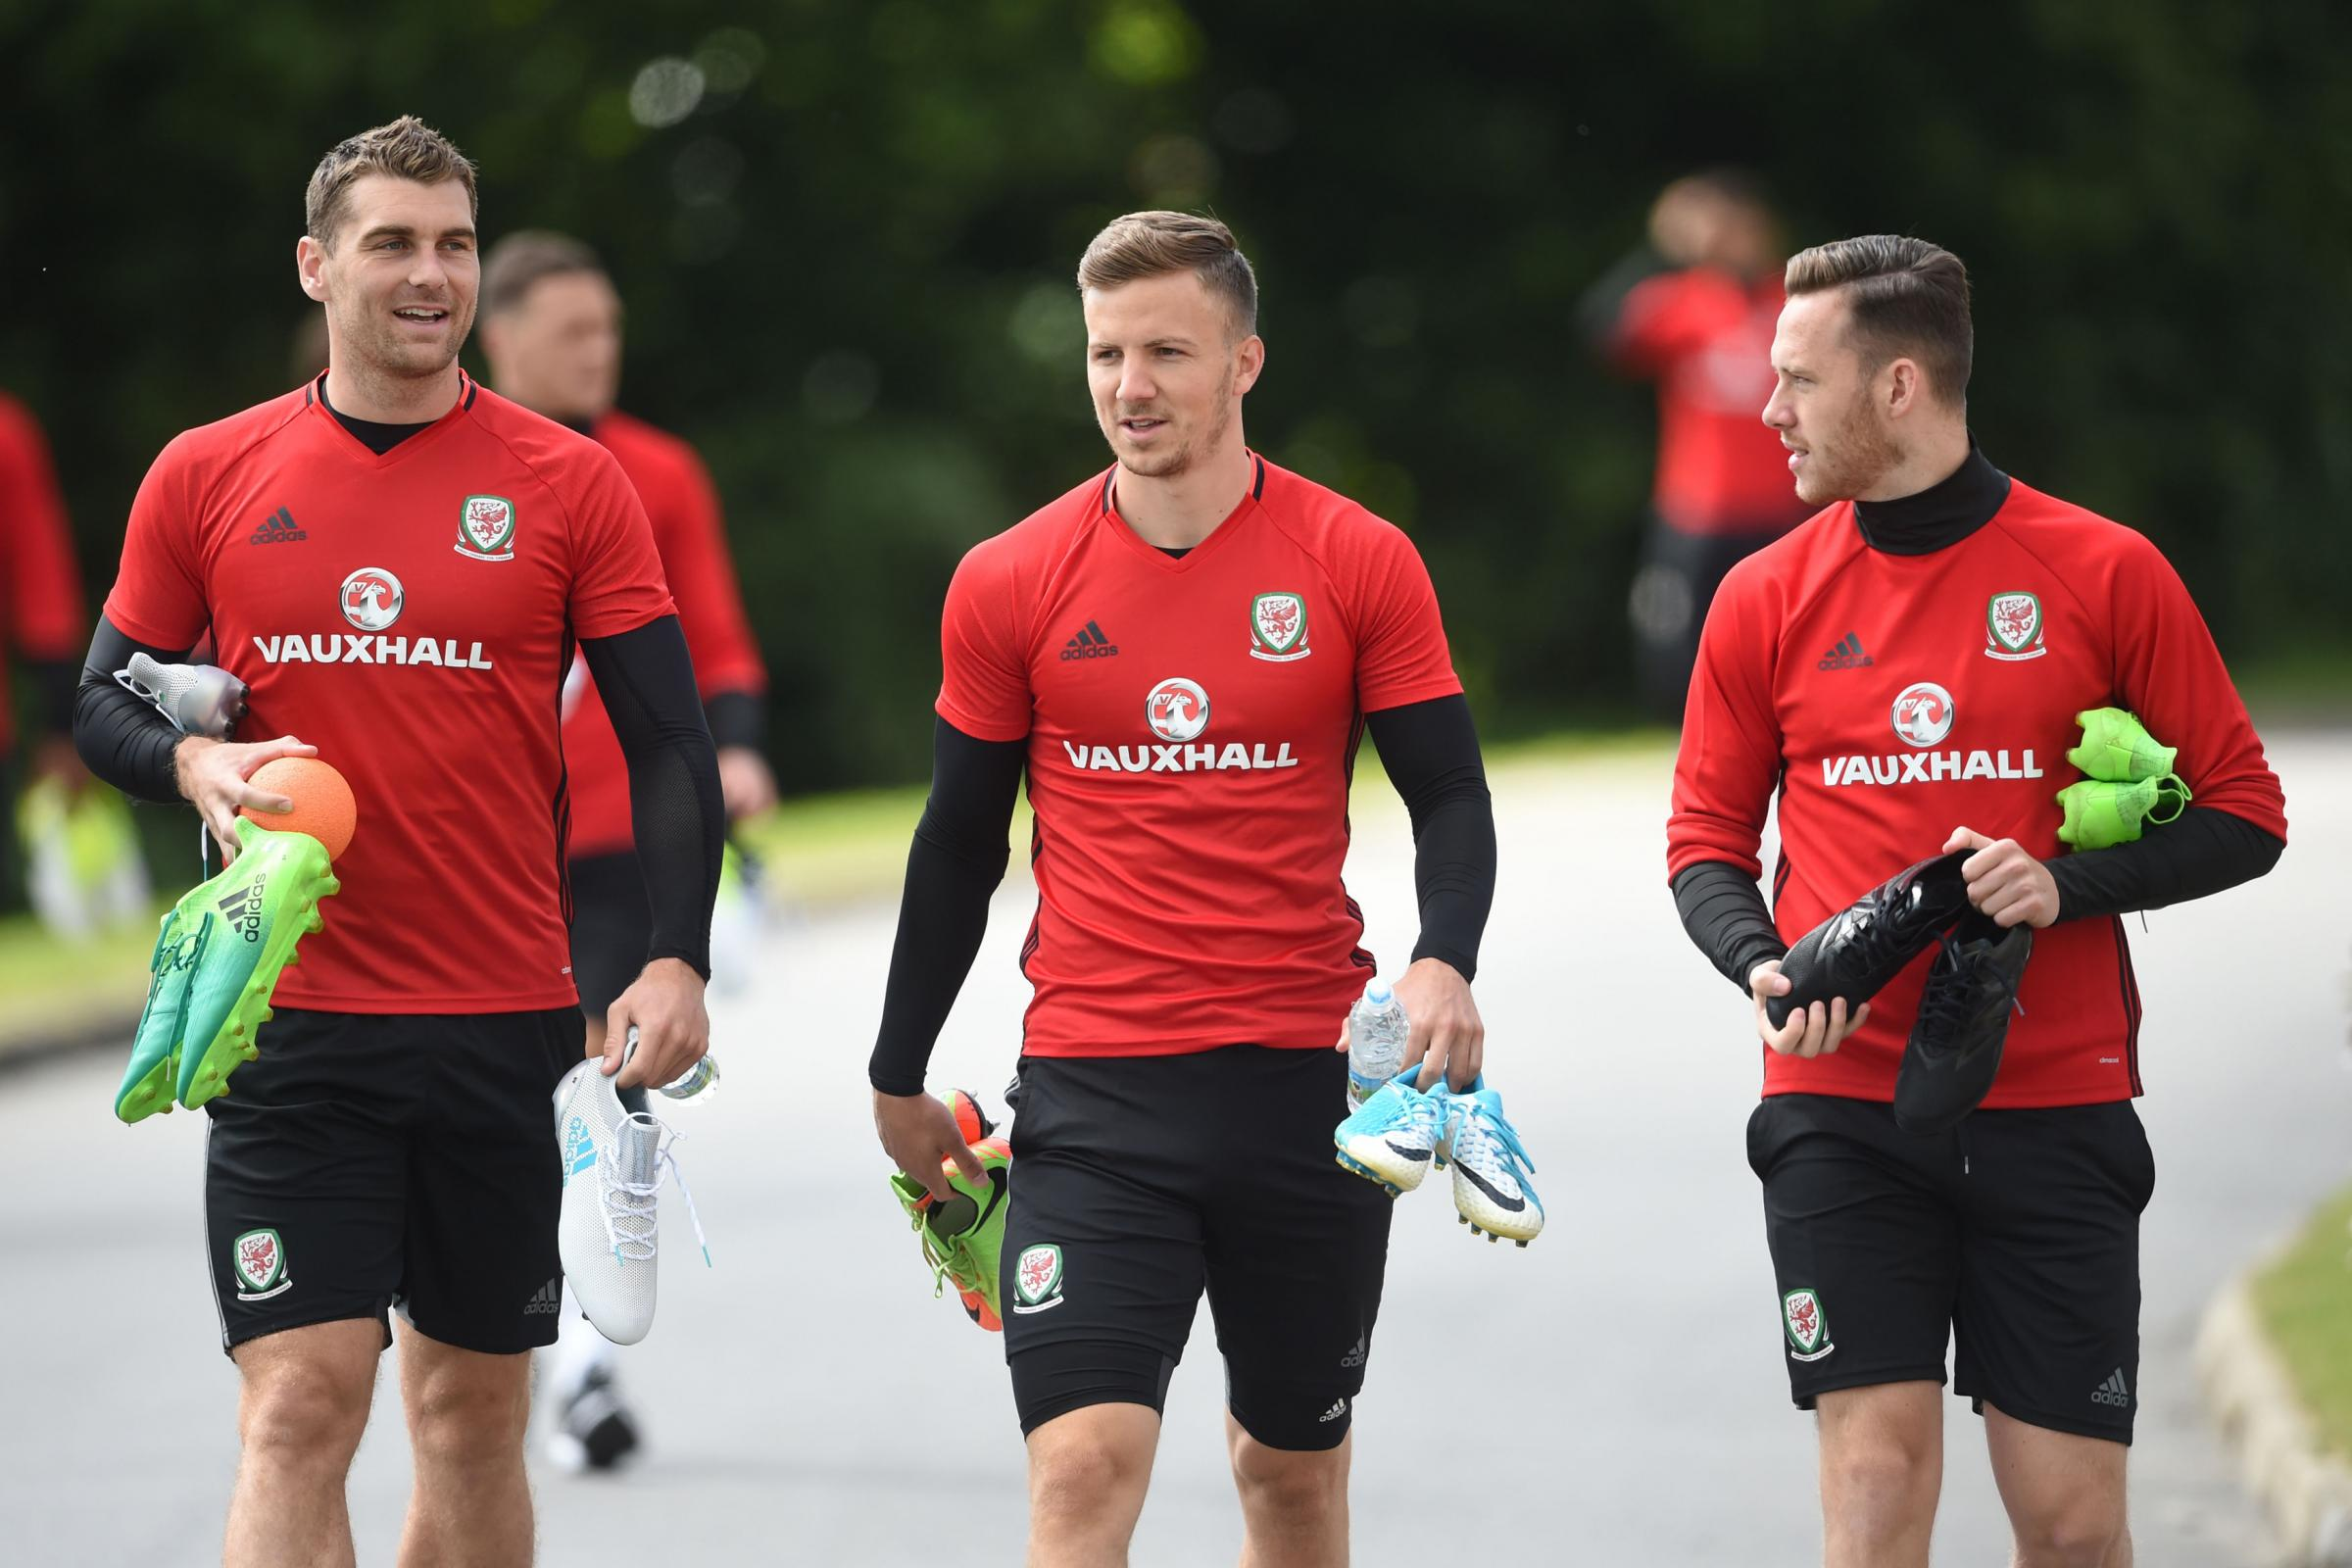 Wales' (left to right) Sam Vokes, Lee Evans and Gethin Jones during the training session at The Vale Resort, Hensol. PRESS ASSOCIATION Photo. Picture date: Wednesday June 7, 2017. See PA story SOCCER Wales. Photo credit should read: Joe Giddens/PA Wir